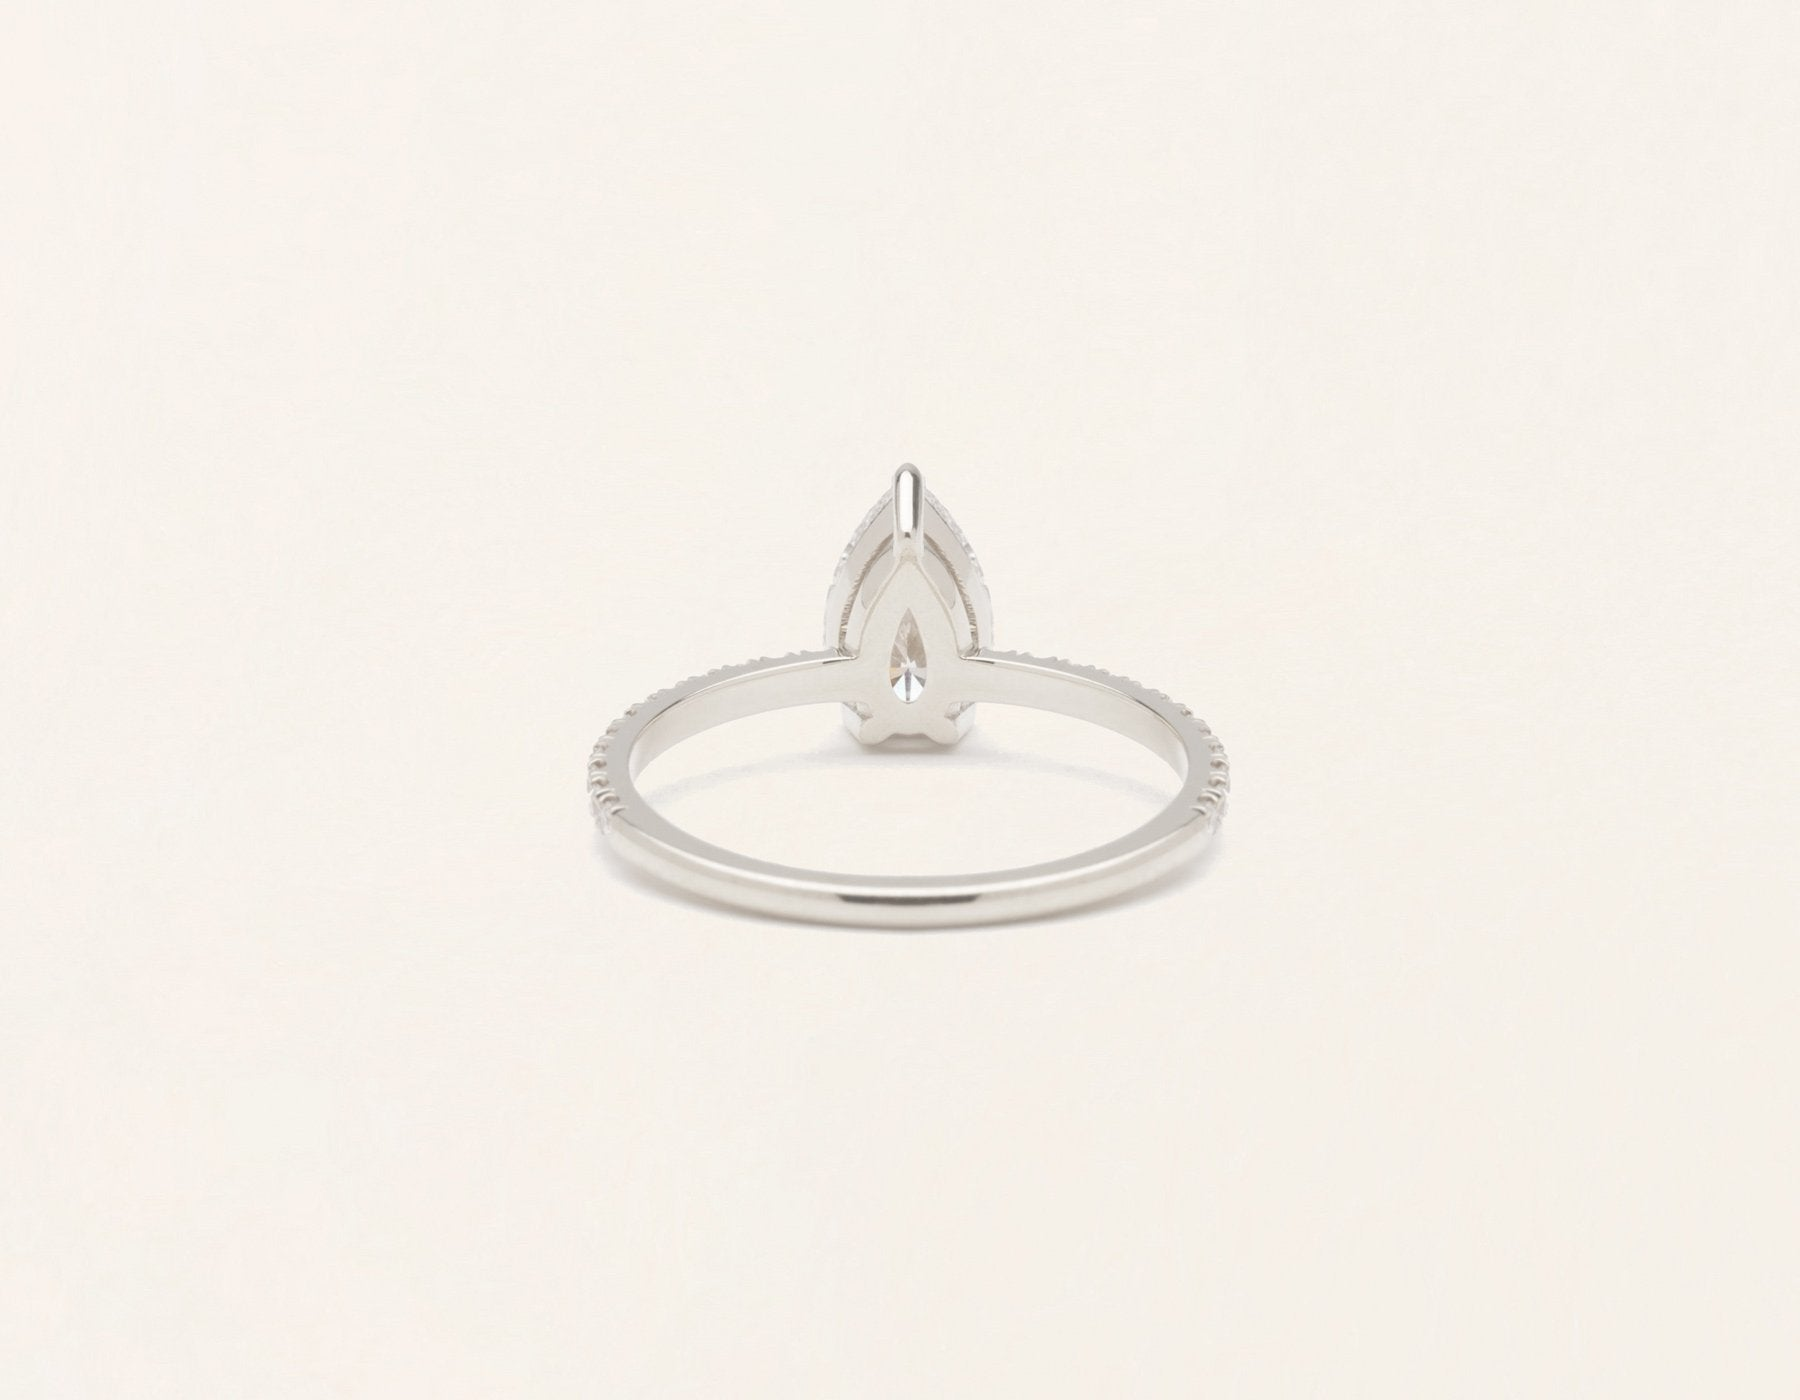 Simple modern 18k solid white gold 1 carat pear pave diamond engagement ring Vrai & Oro